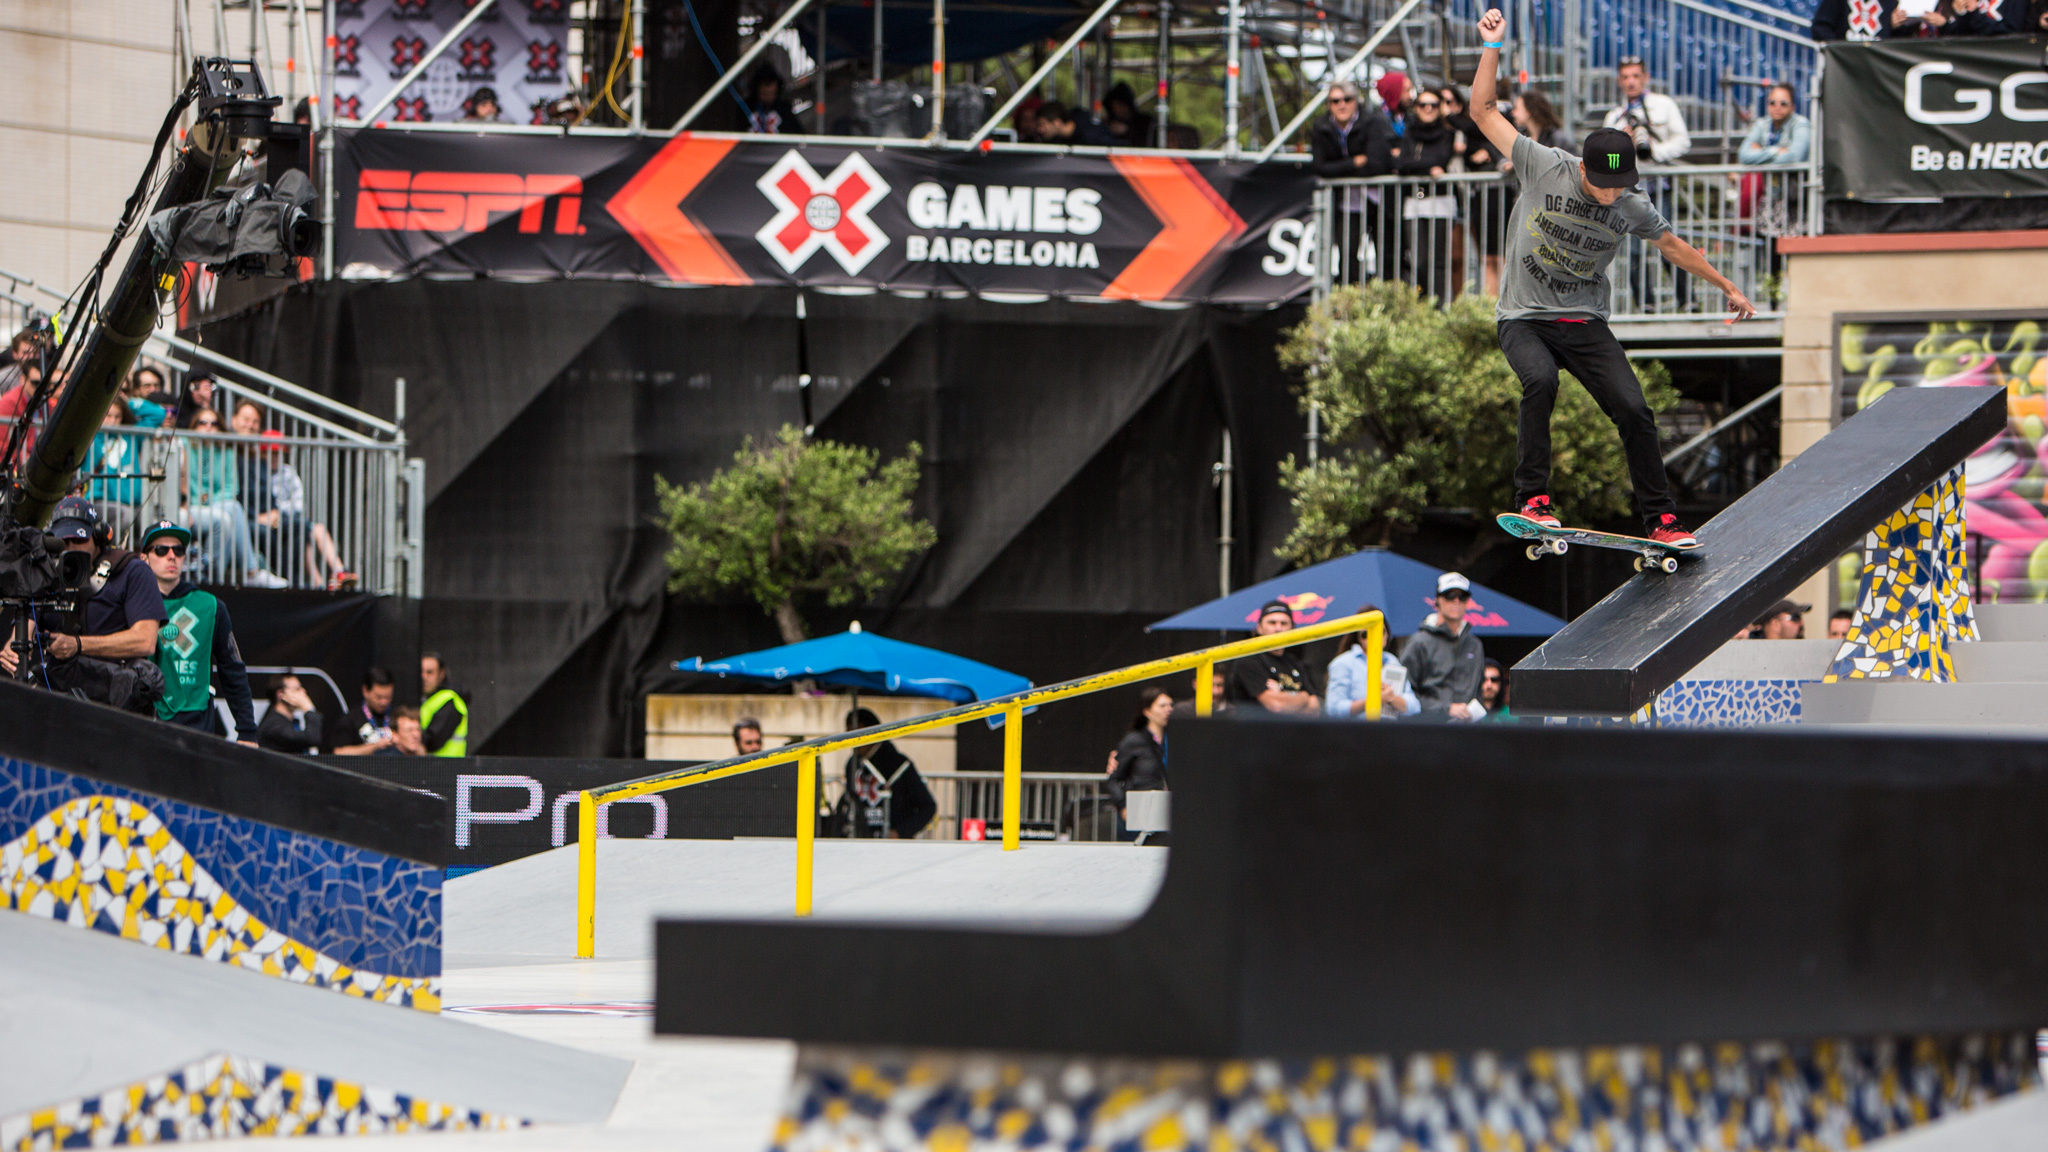 Nyjah Huston on his way to his sixth X Games medal.